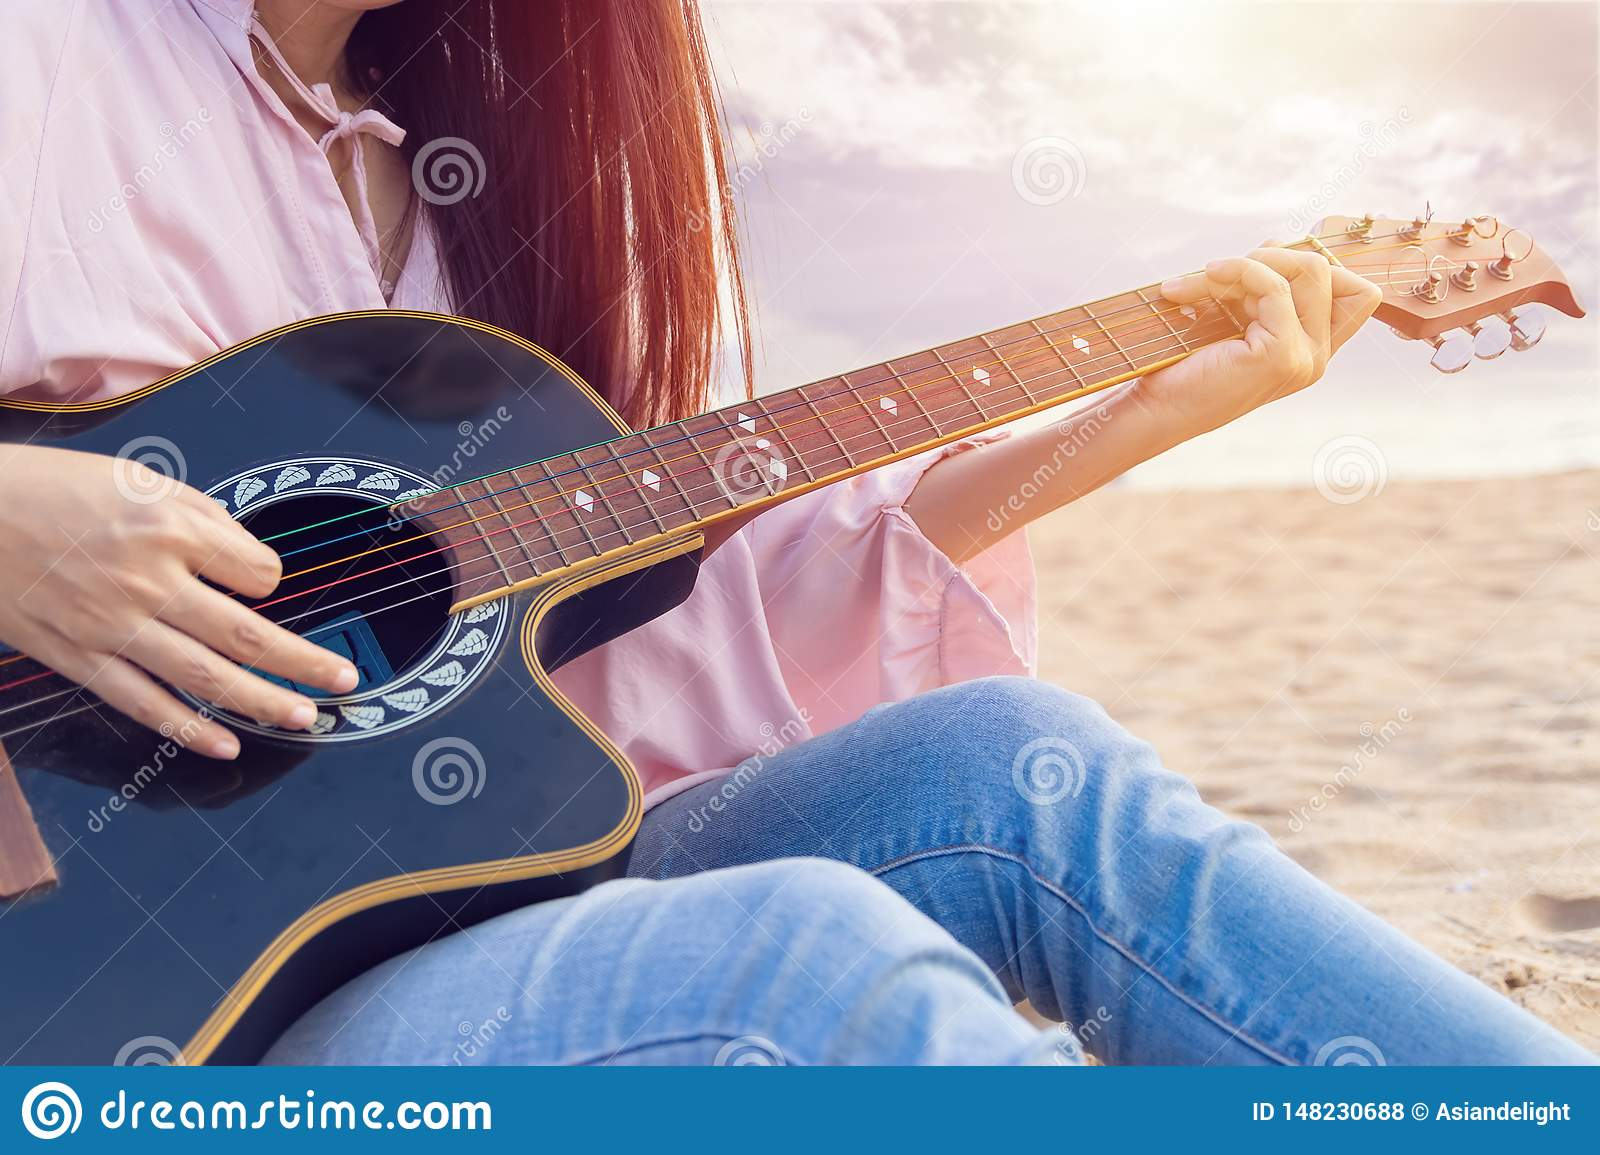 Woman`s hands playing acoustic guitar, capture chords by finger on sandy beach at sunset time. playing music concept